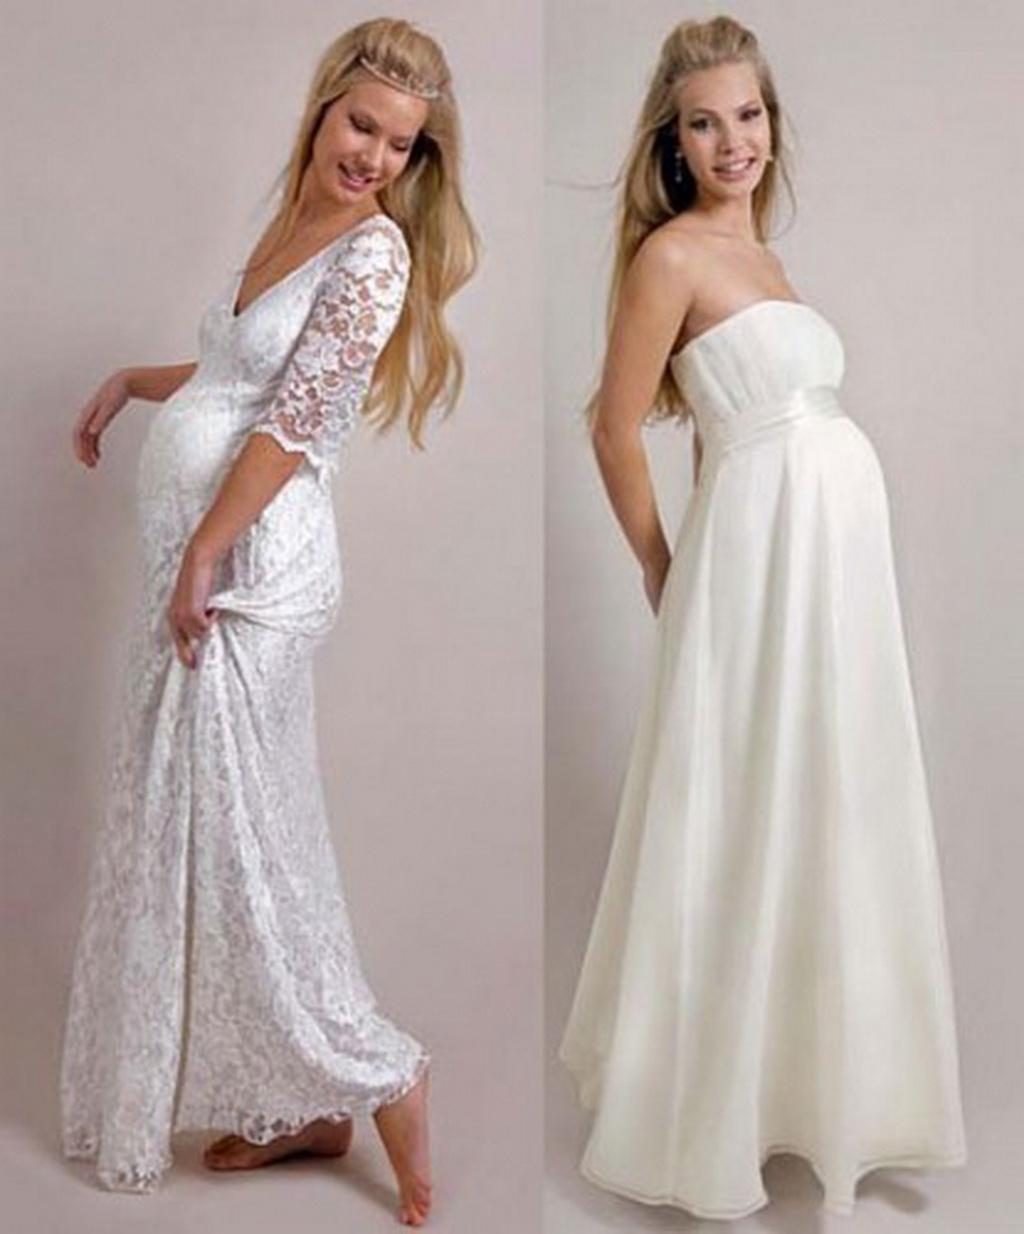 1 . Luxury Wedding Dresses